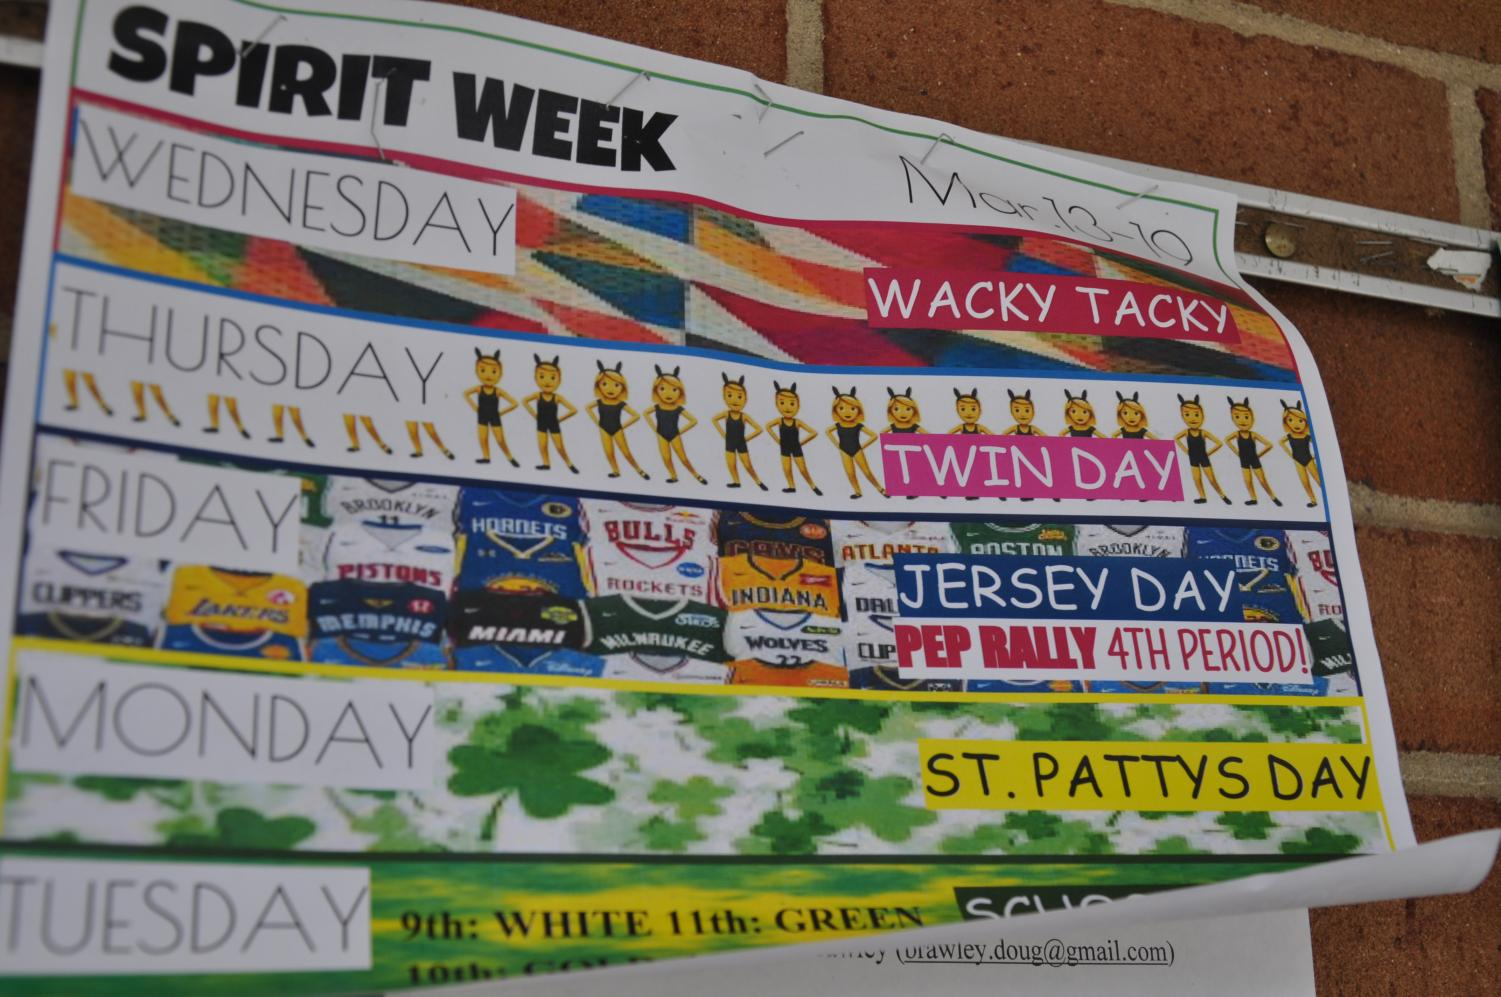 Spirit Week is in full swing with posters hanging all around the school detailing the theme for each day.